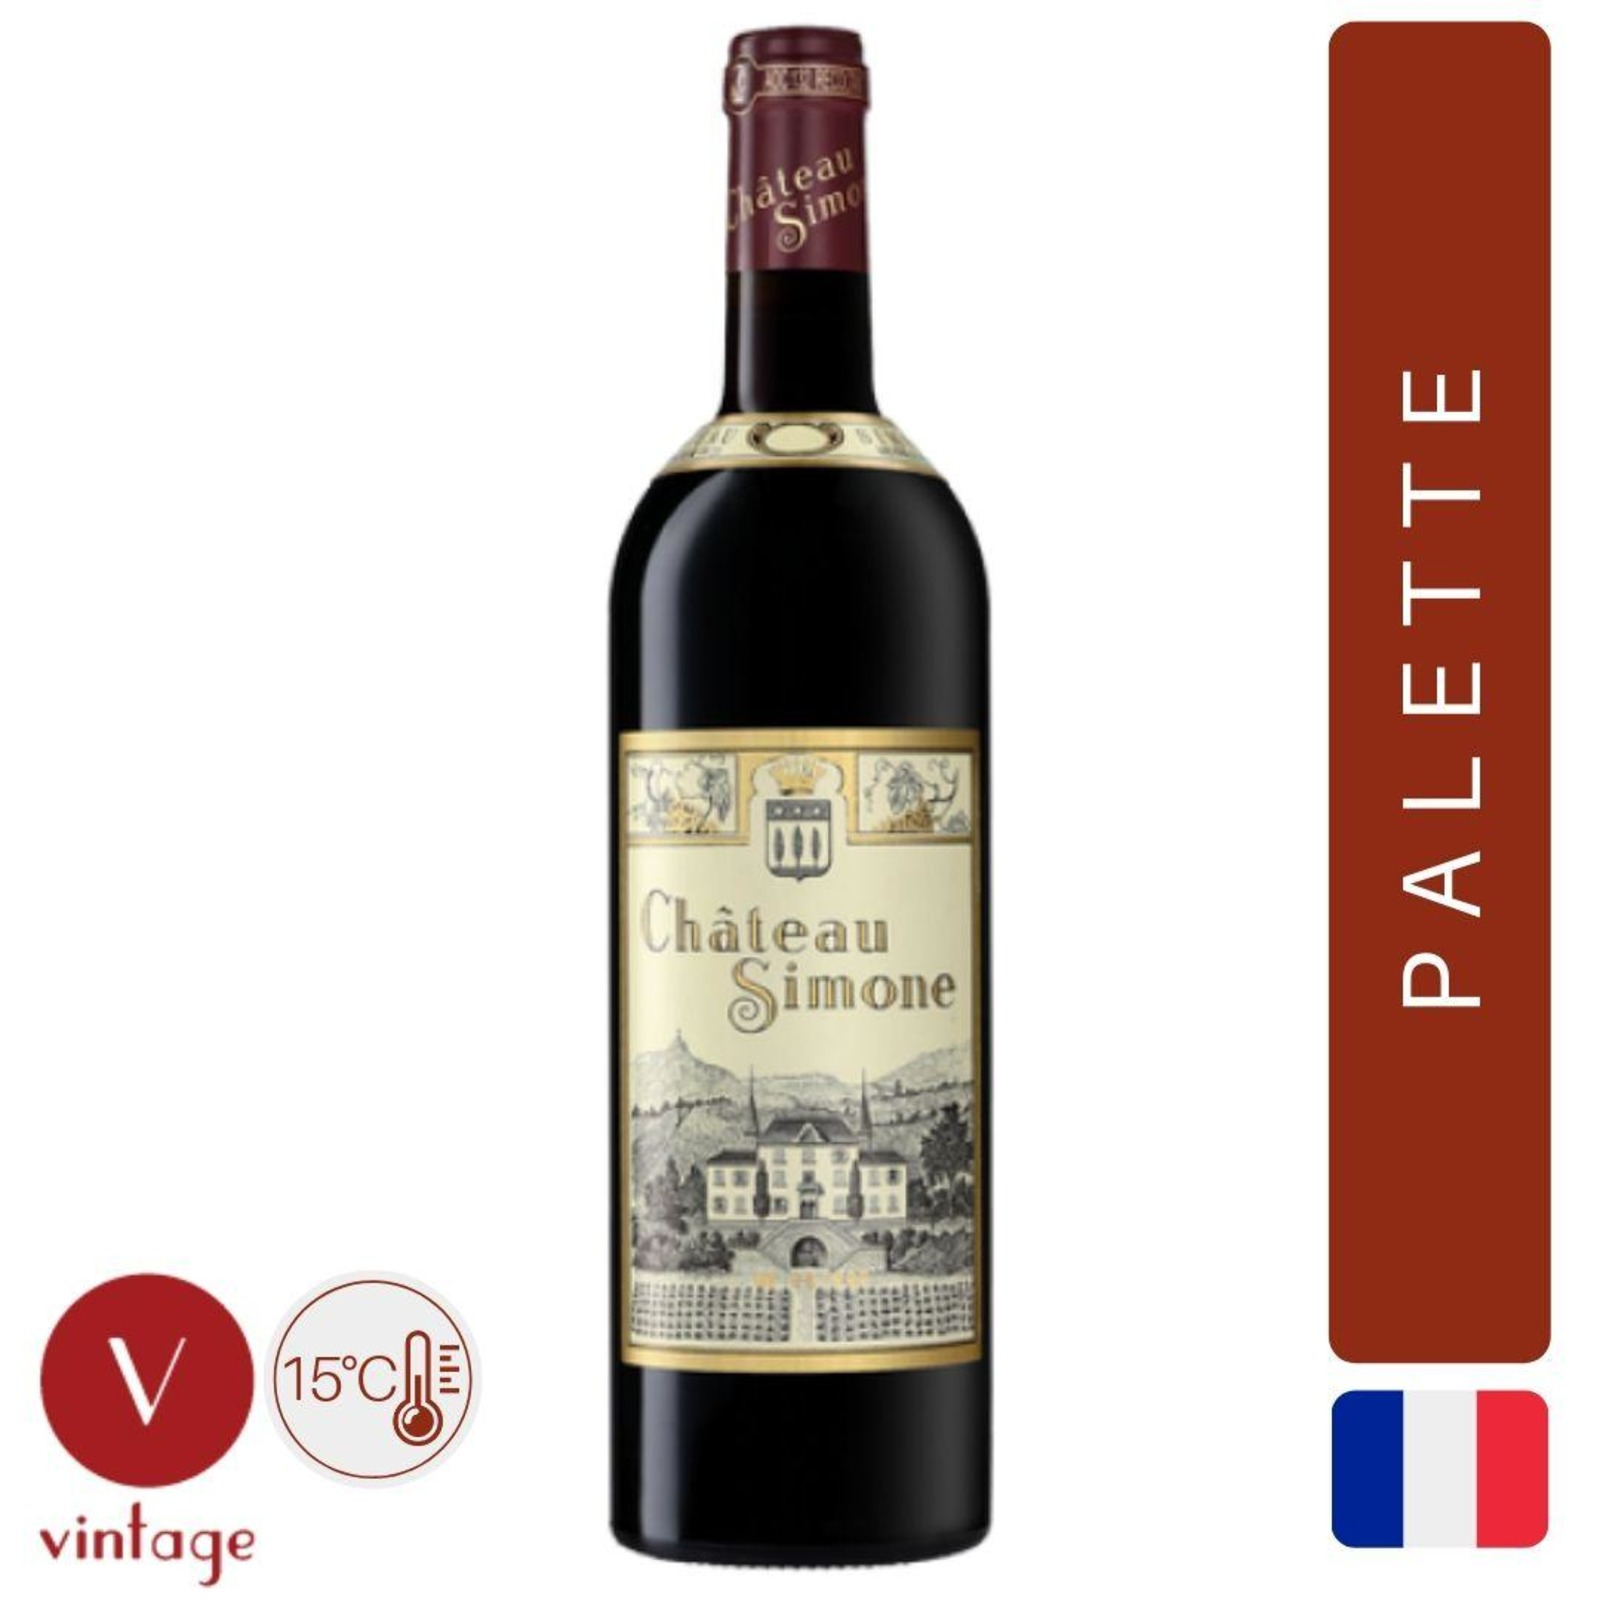 Chateau Simone - Provence Red Wine